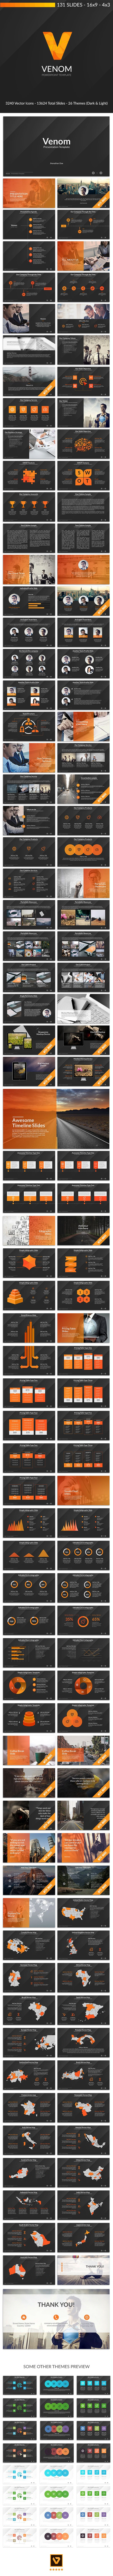 Venom - Multipurpose Powerpoint Template #design #slides Download: http://graphicriver.net/item/venom-multipurpose-powerpoint-template/13699253?ref=ksioks